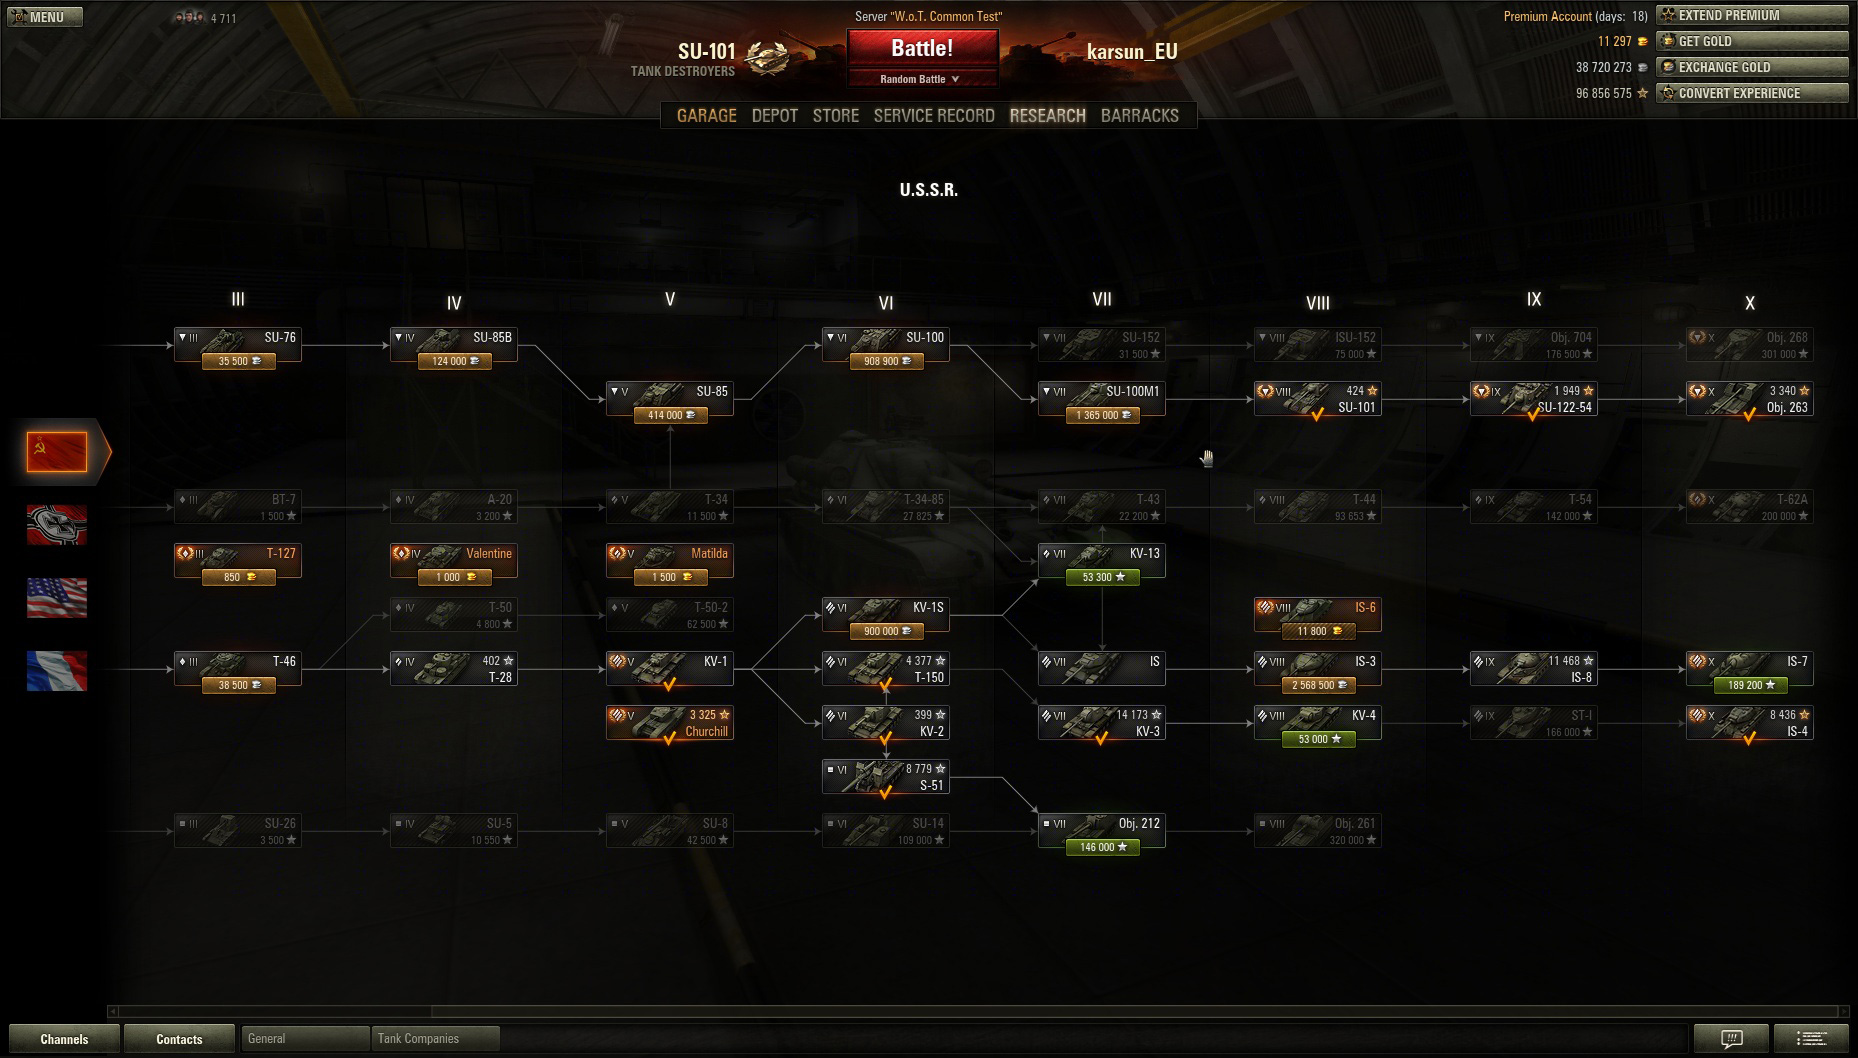 T-127 matchmaking